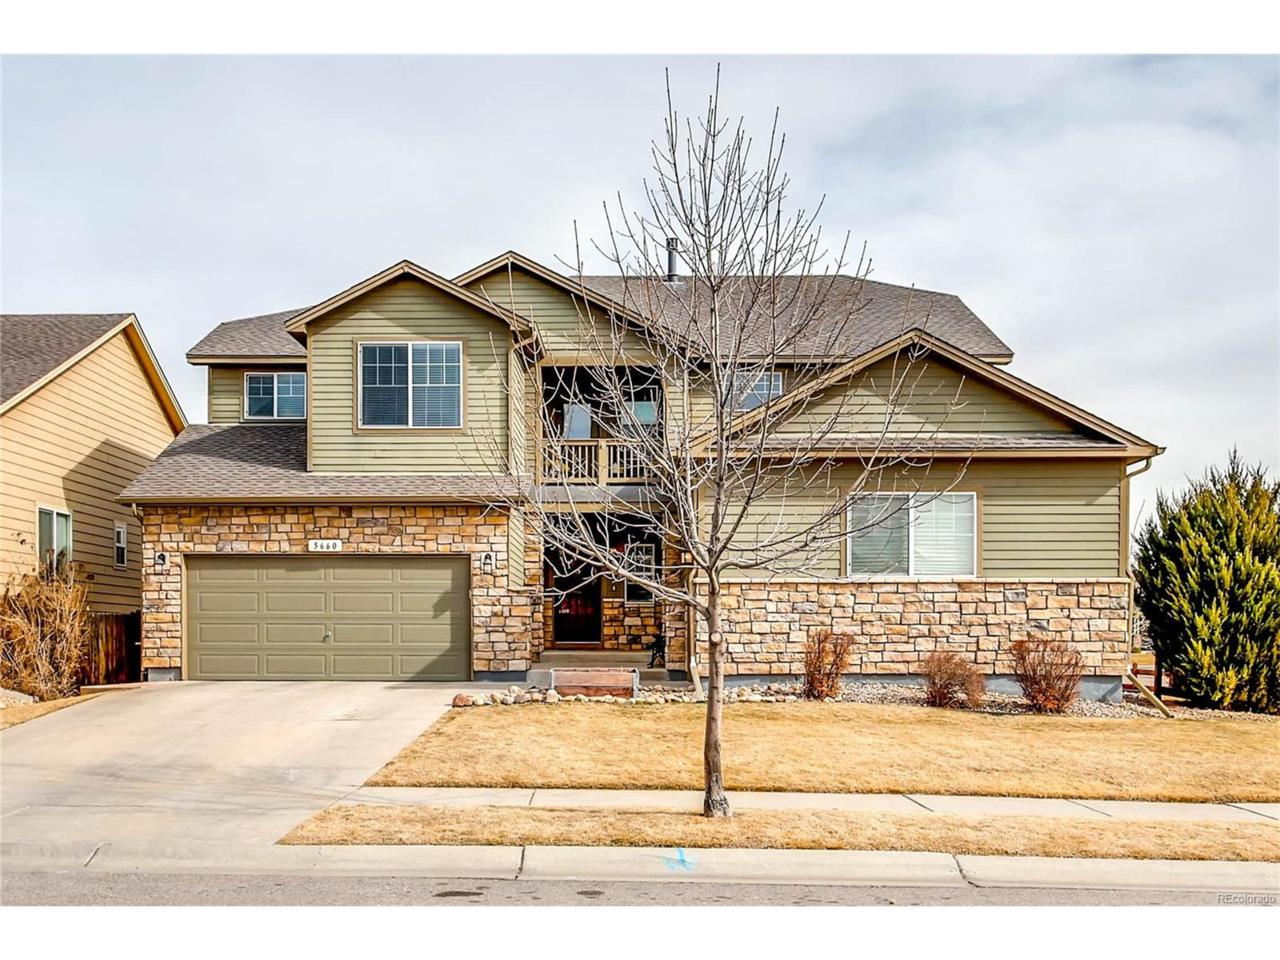 5660 Calgary Street, Timnath, CO 80547 (MLS #7712681) :: 8z Real Estate